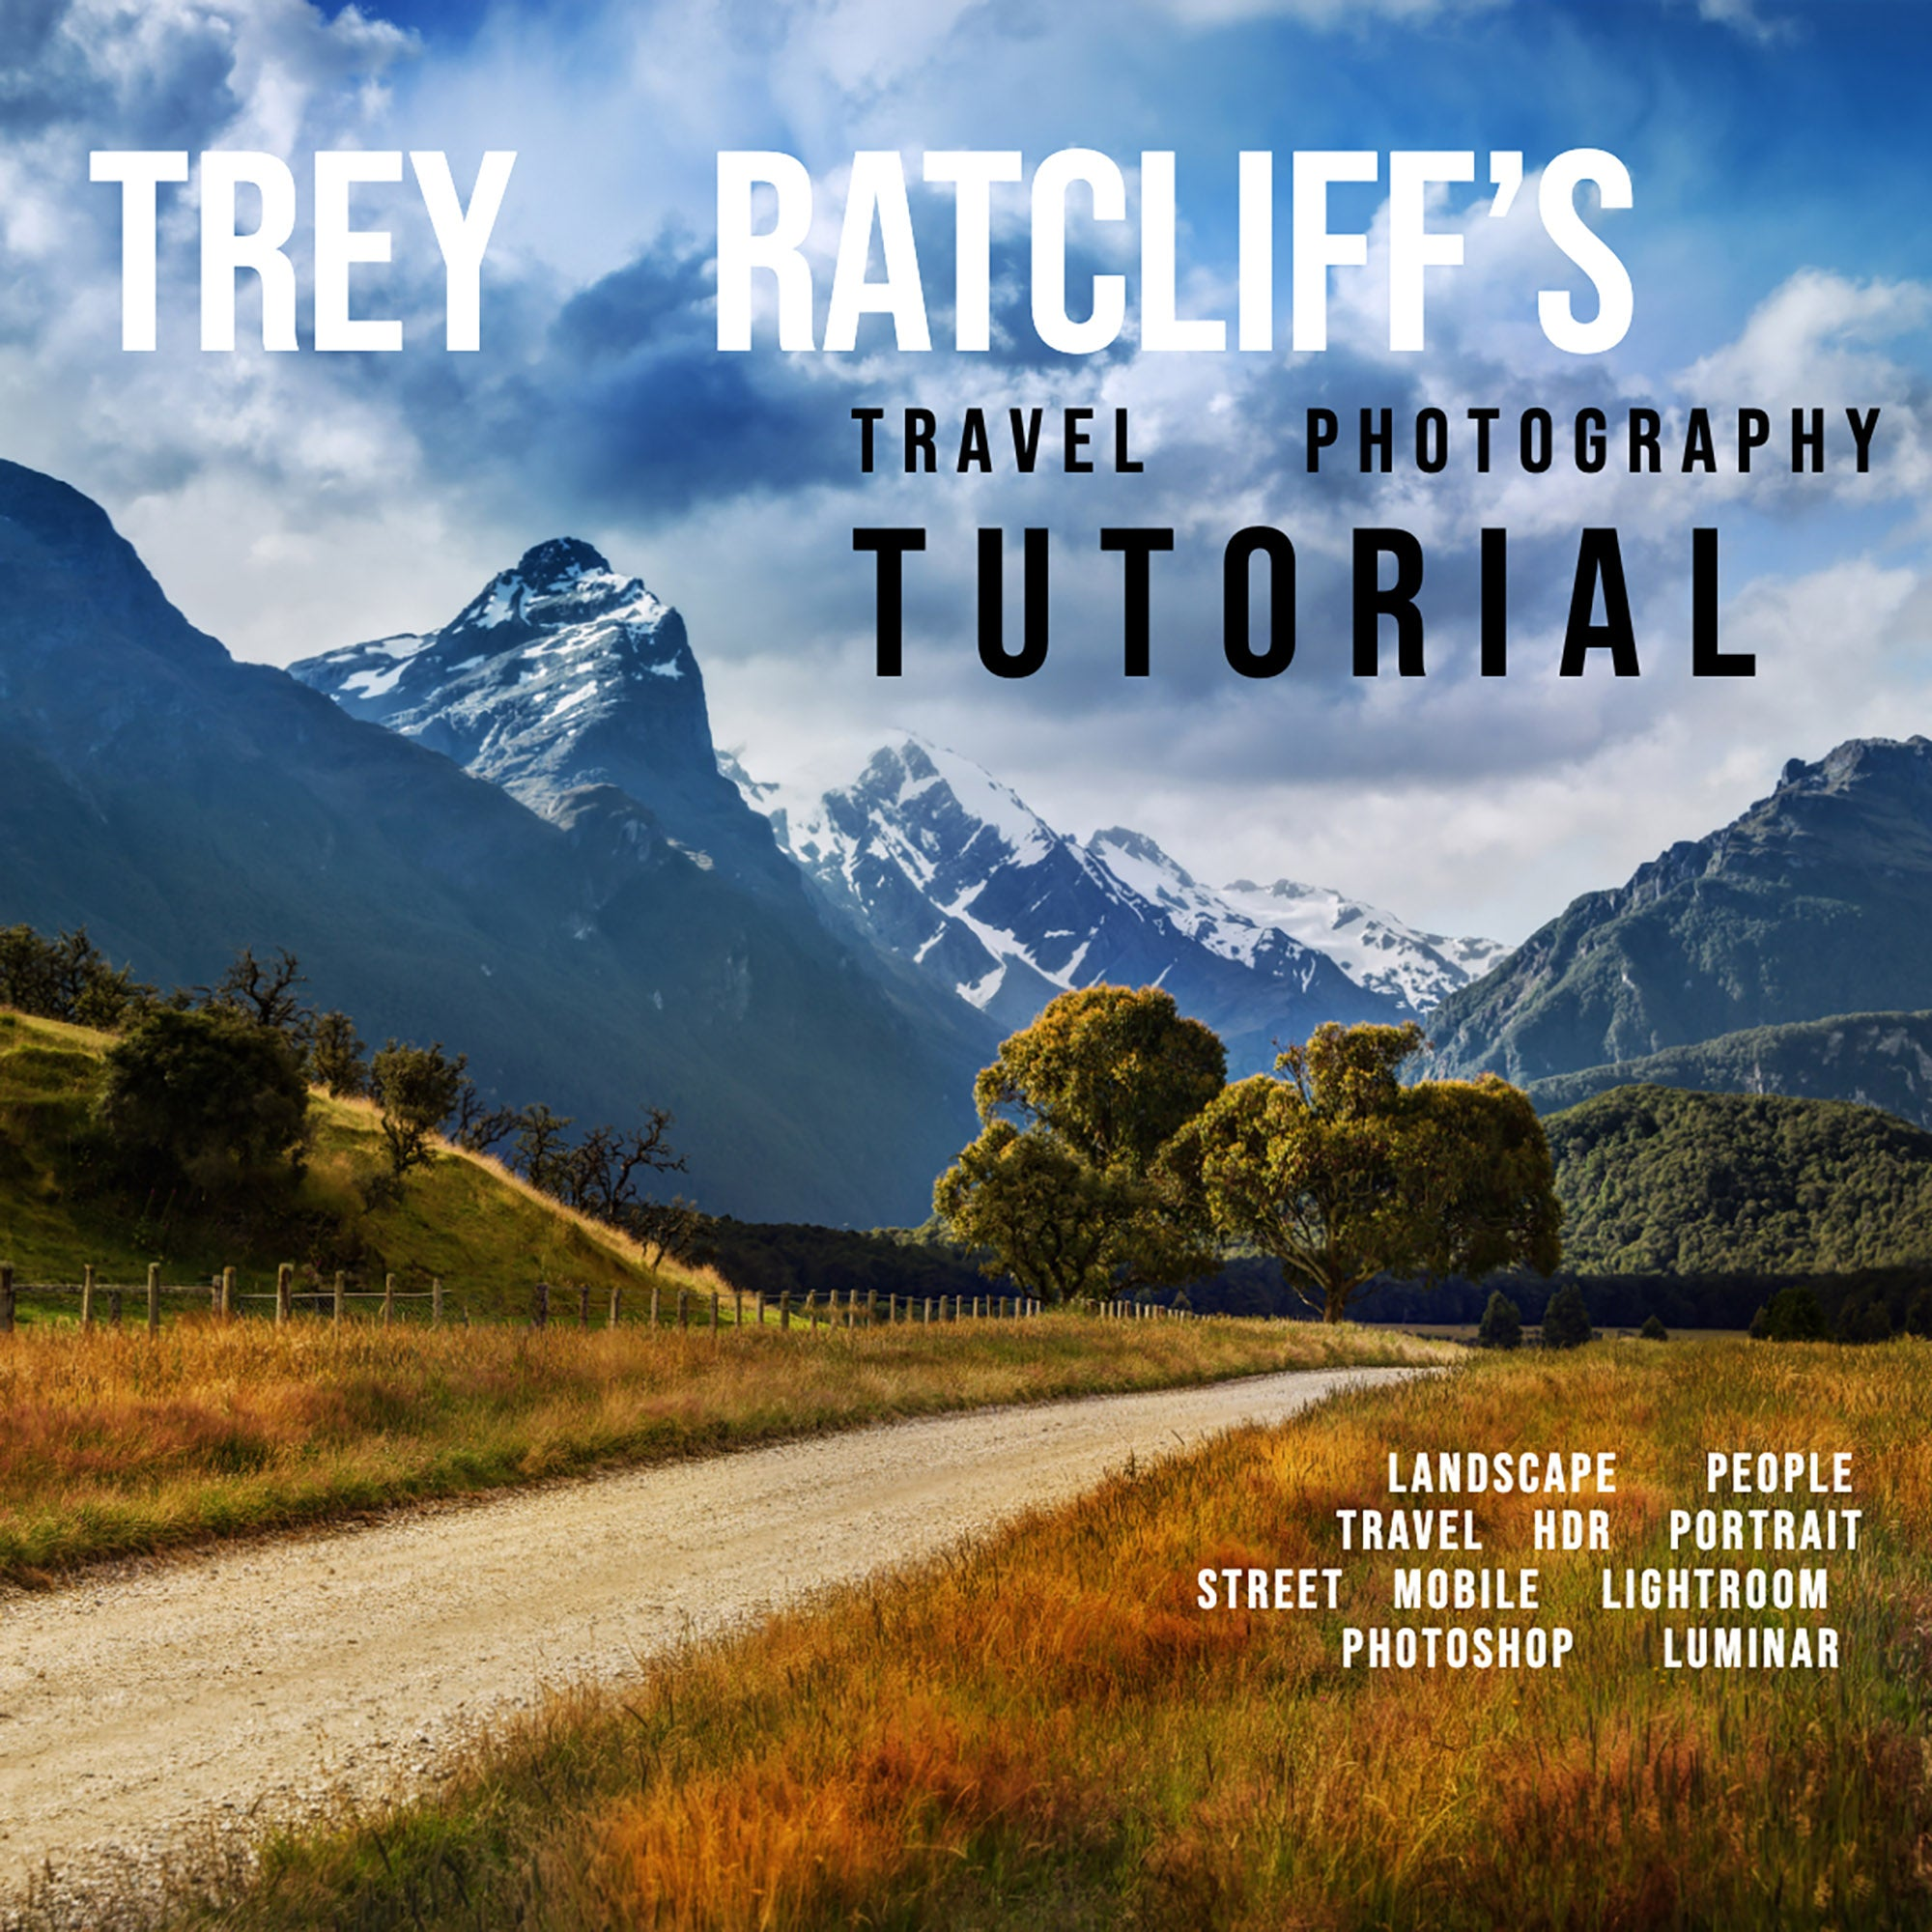 Trey Ratcliff's Travel Photography Tutorial